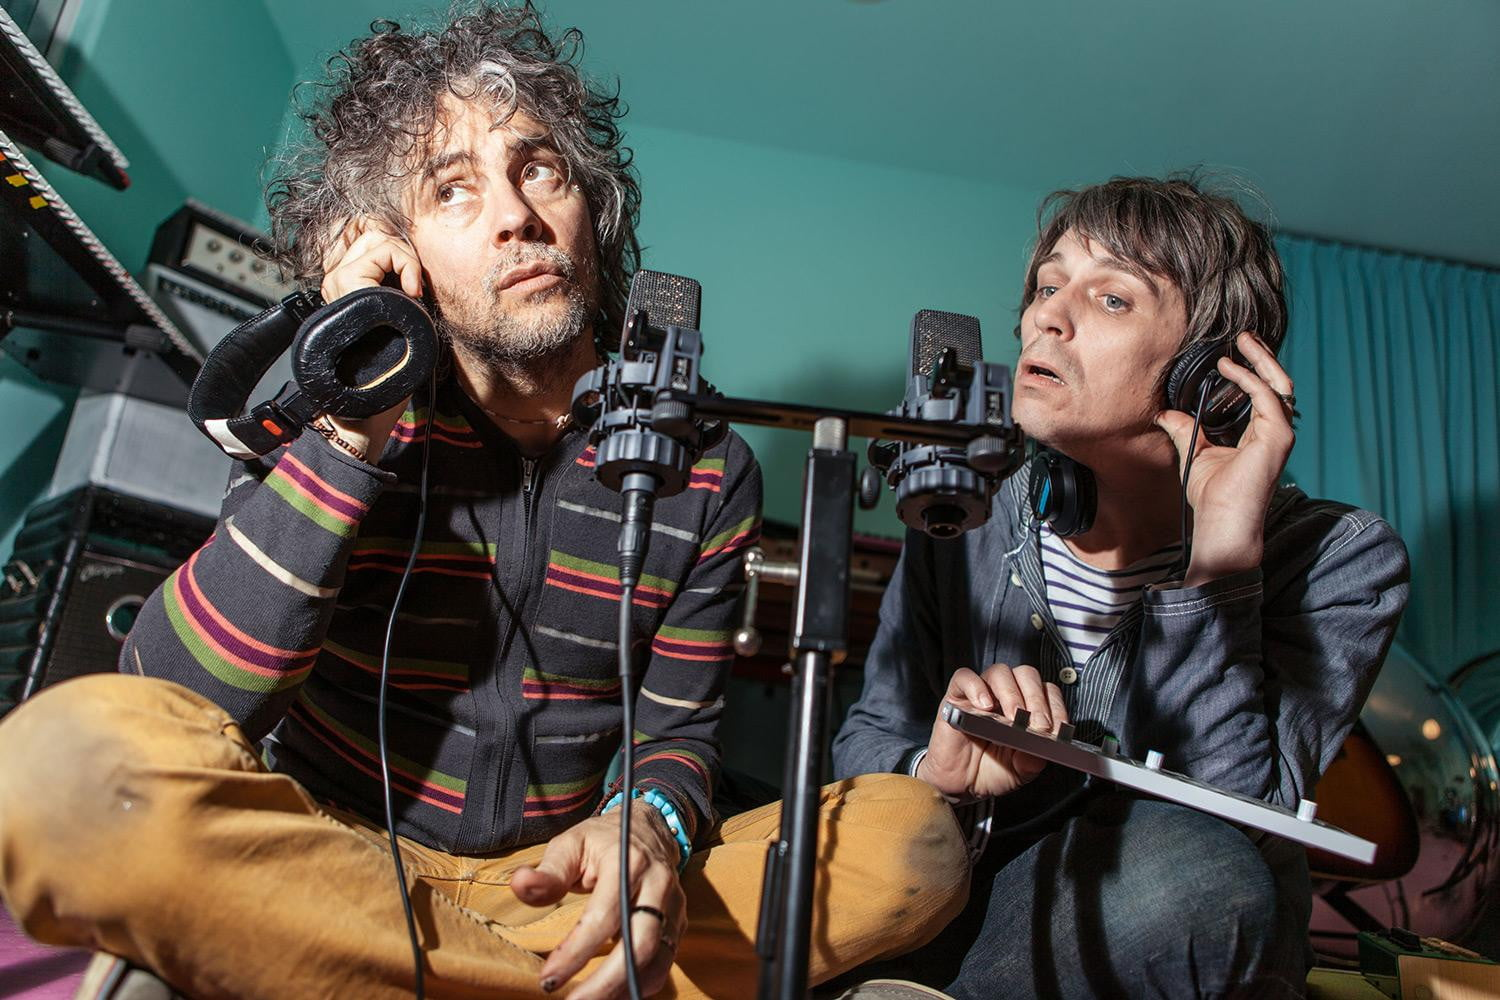 If Sgt. Pepper wasn't weird enough, count on The Flaming Lips to turn up the dial